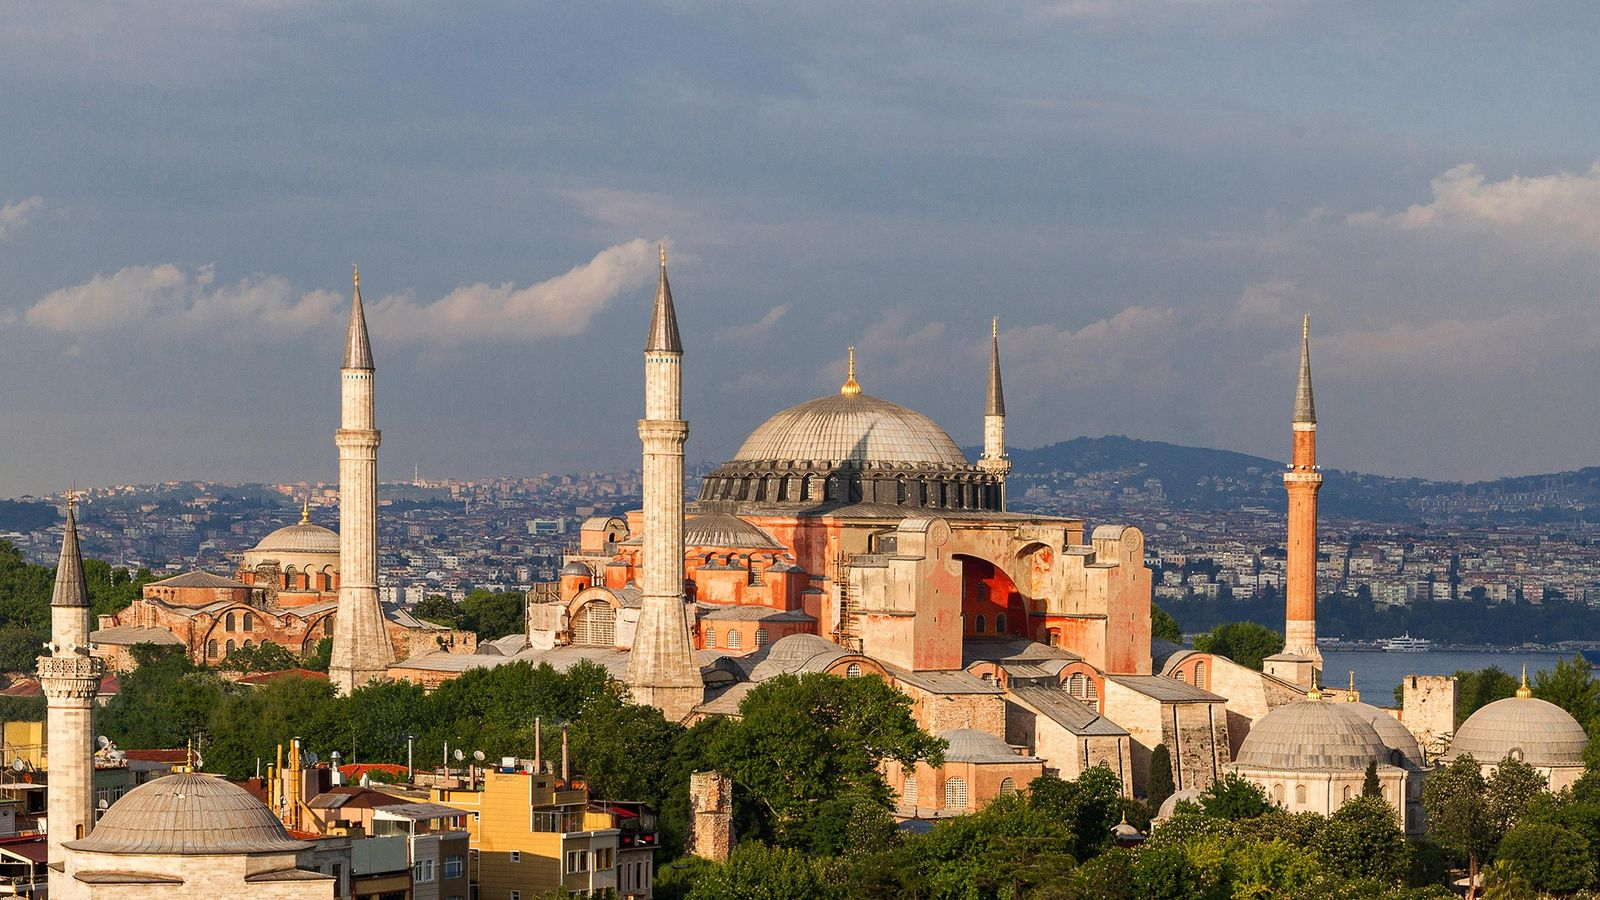 Istanbul: The Hagia Sophia, one of the world's architectural marvels, rises near the Bosporus.